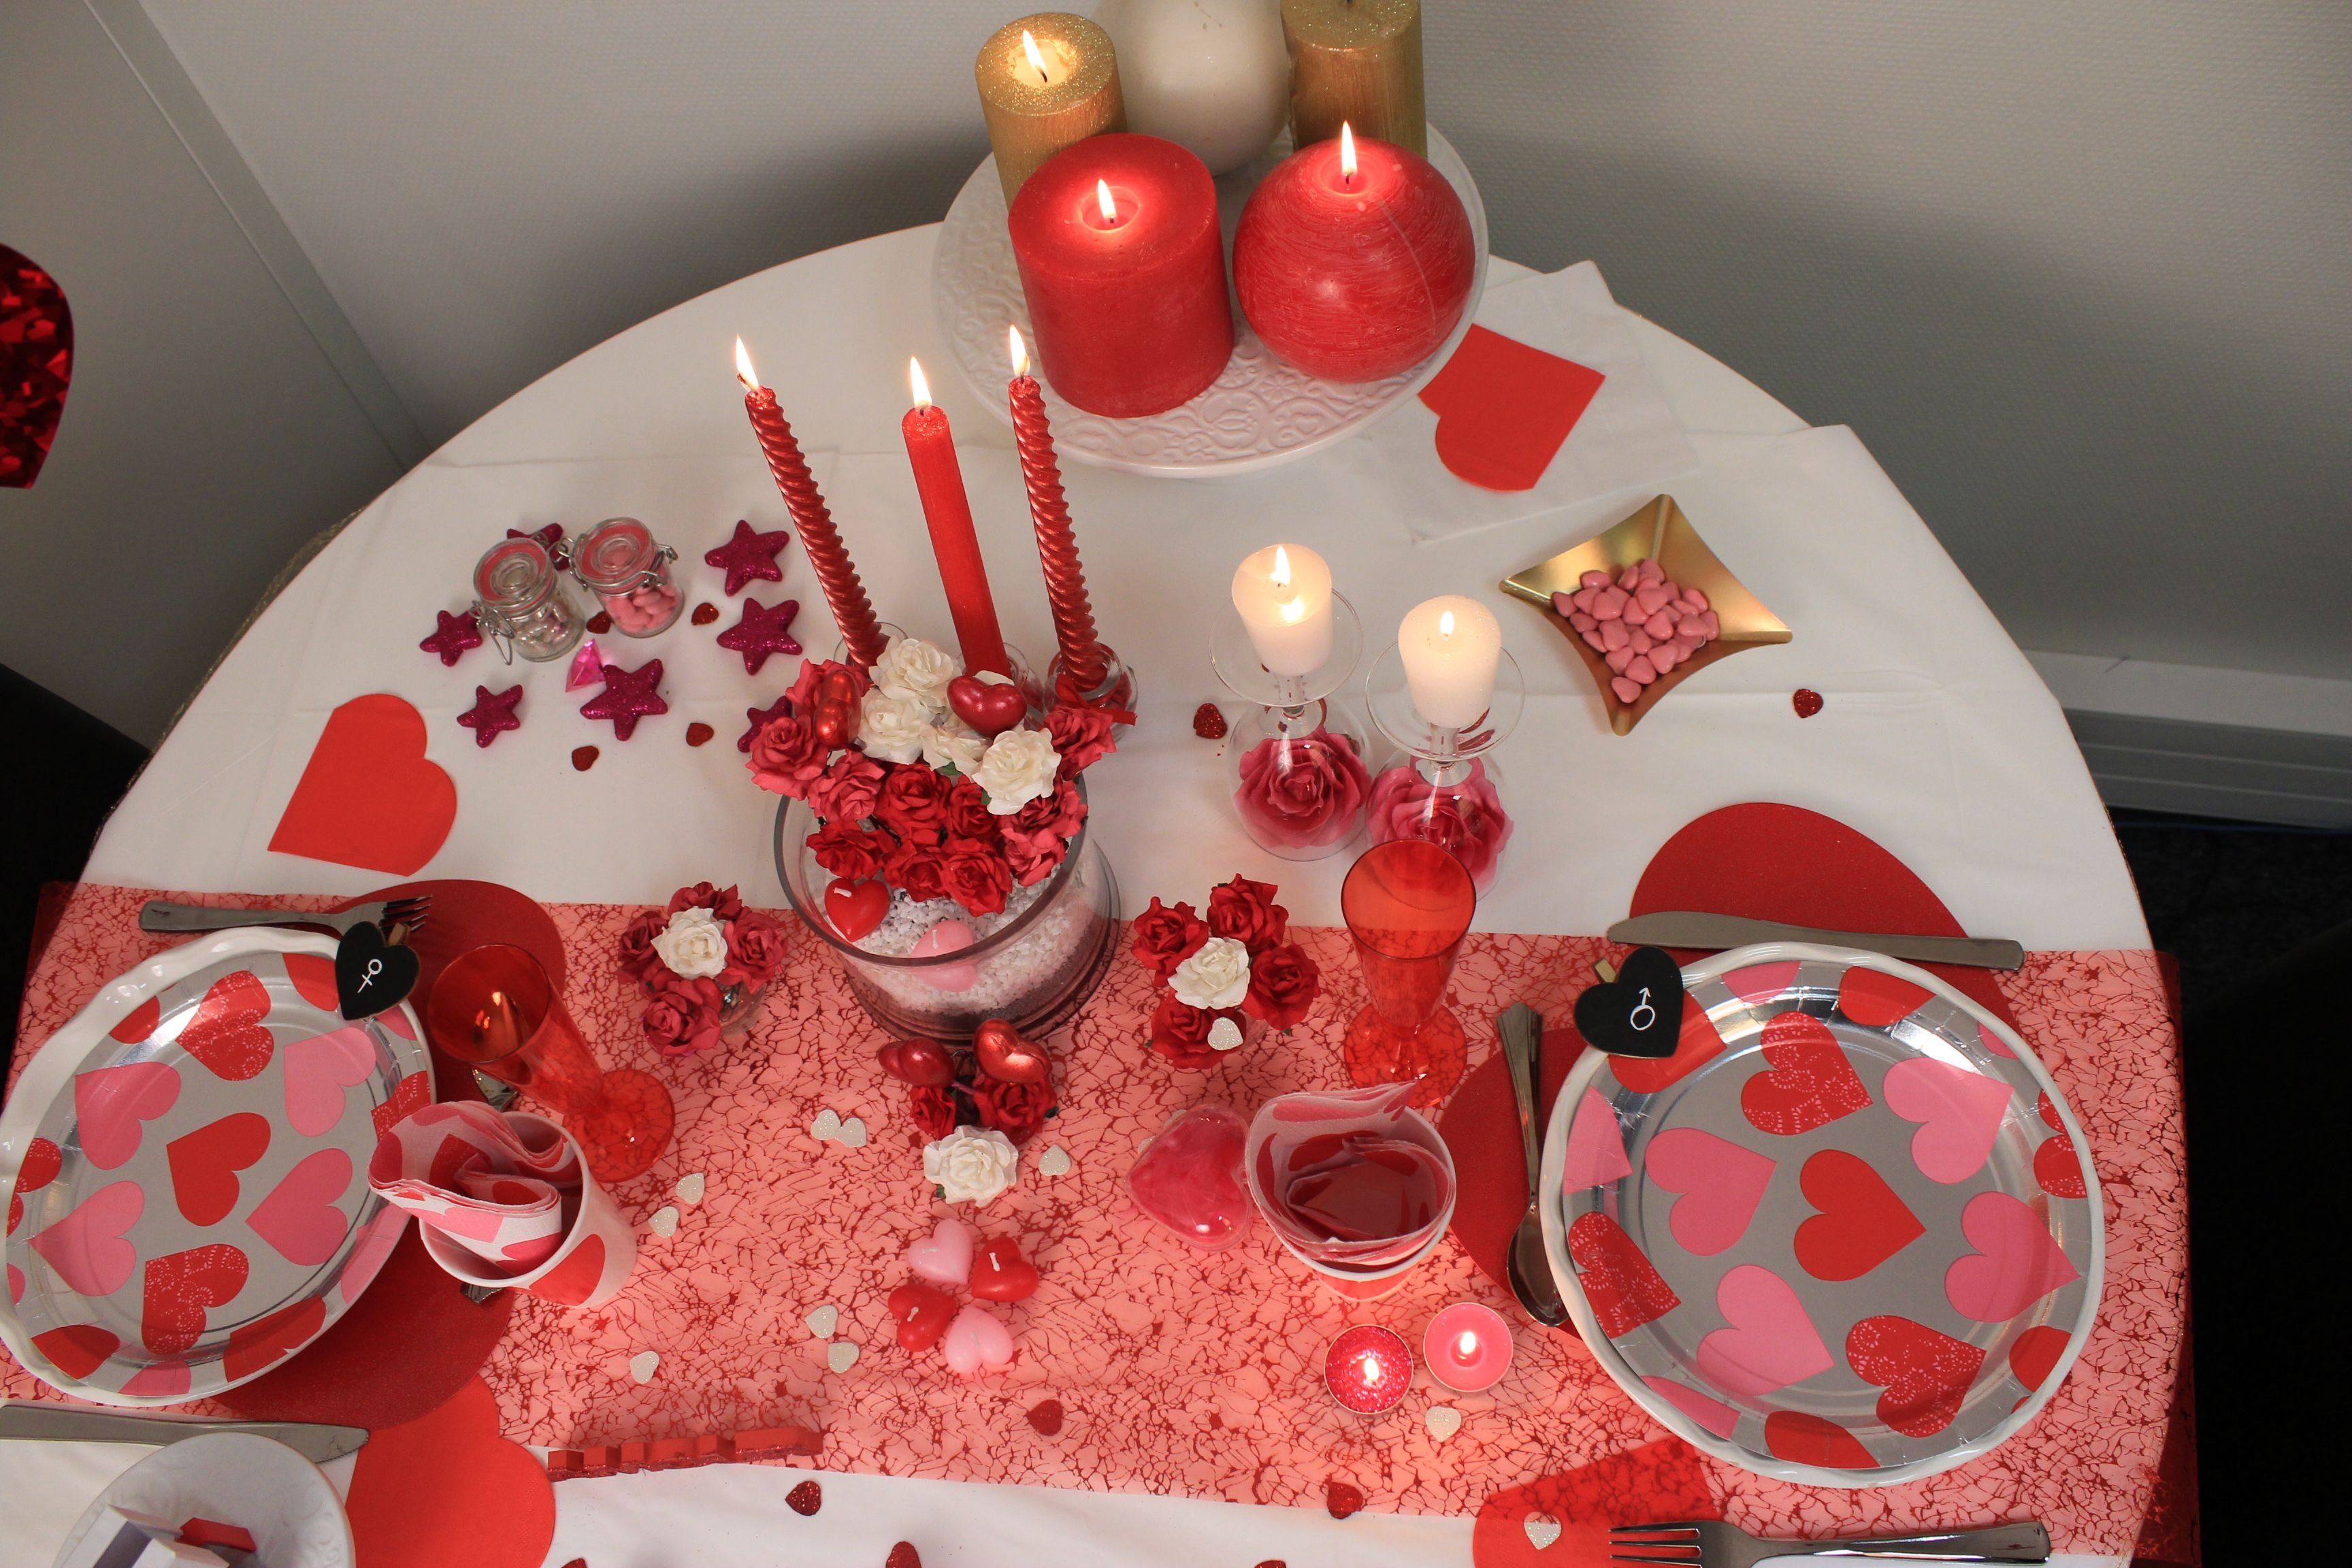 Decoration Anniversaire Romantique Come Si Organizza Una Cena Romantica I